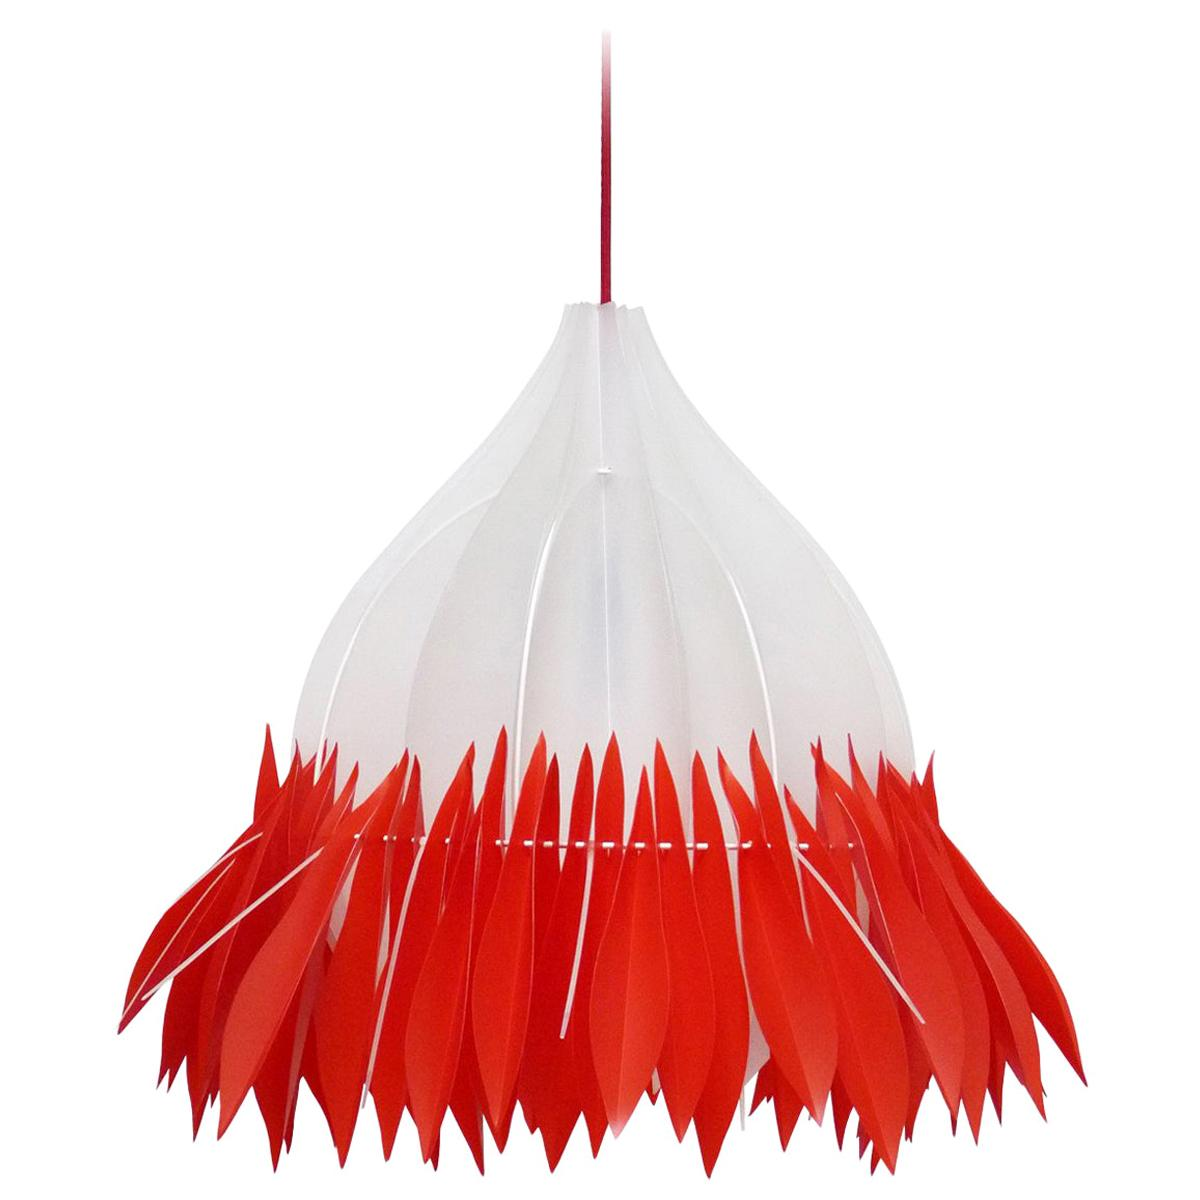 Organic Modern White and Red Chandelier Pendant, France, 2018